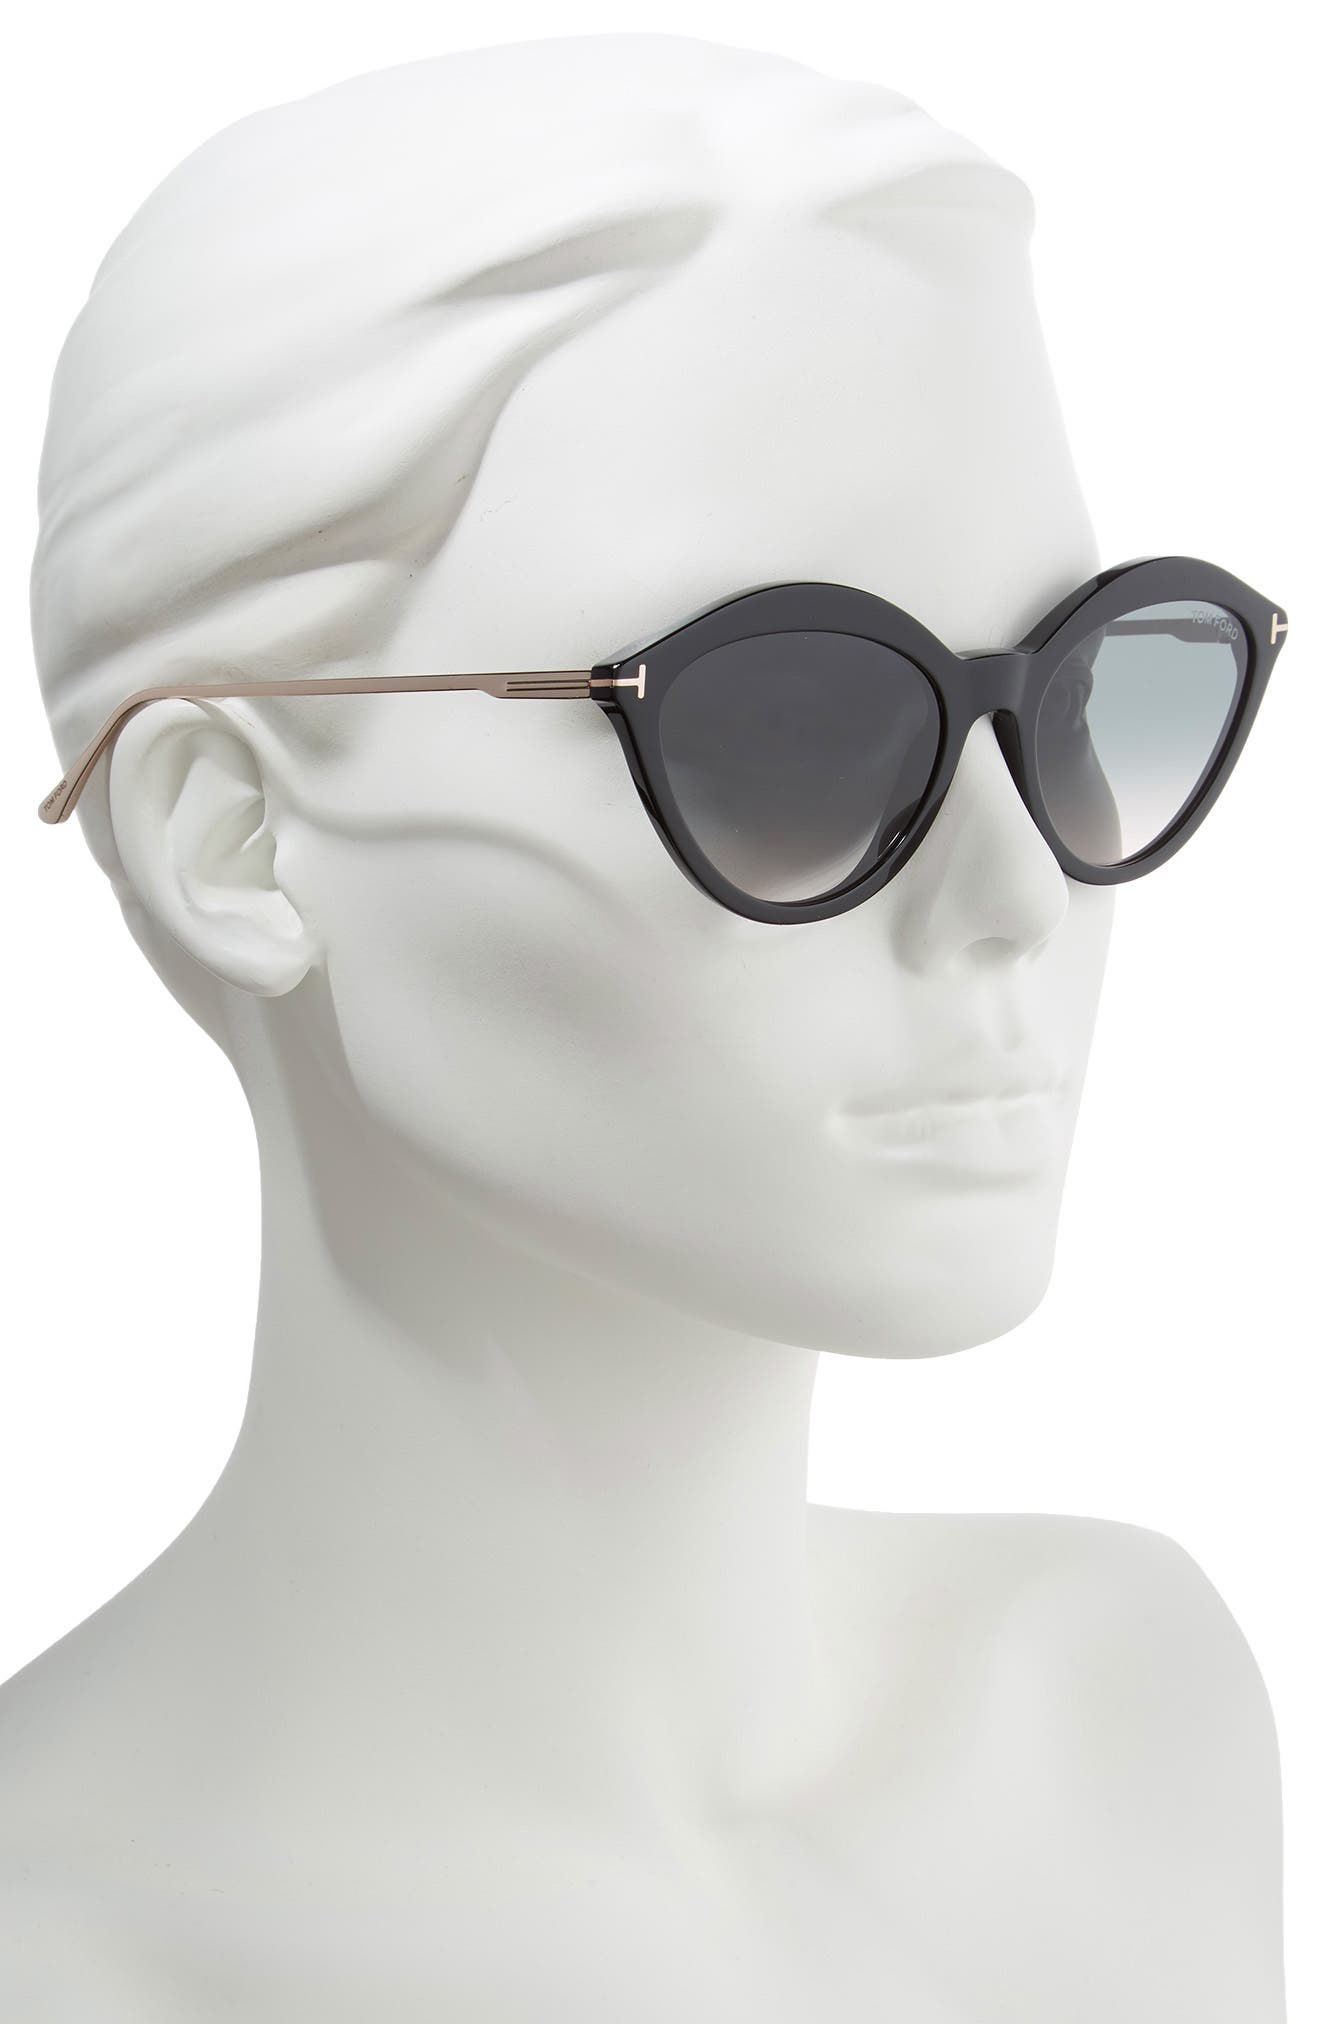 TOM FORD,                             Chloe 57mm Cat Eye Sunglasses,                             Alternate thumbnail 2, color,                             BLACK/ ROSE GOLD/ GREY OCHRE